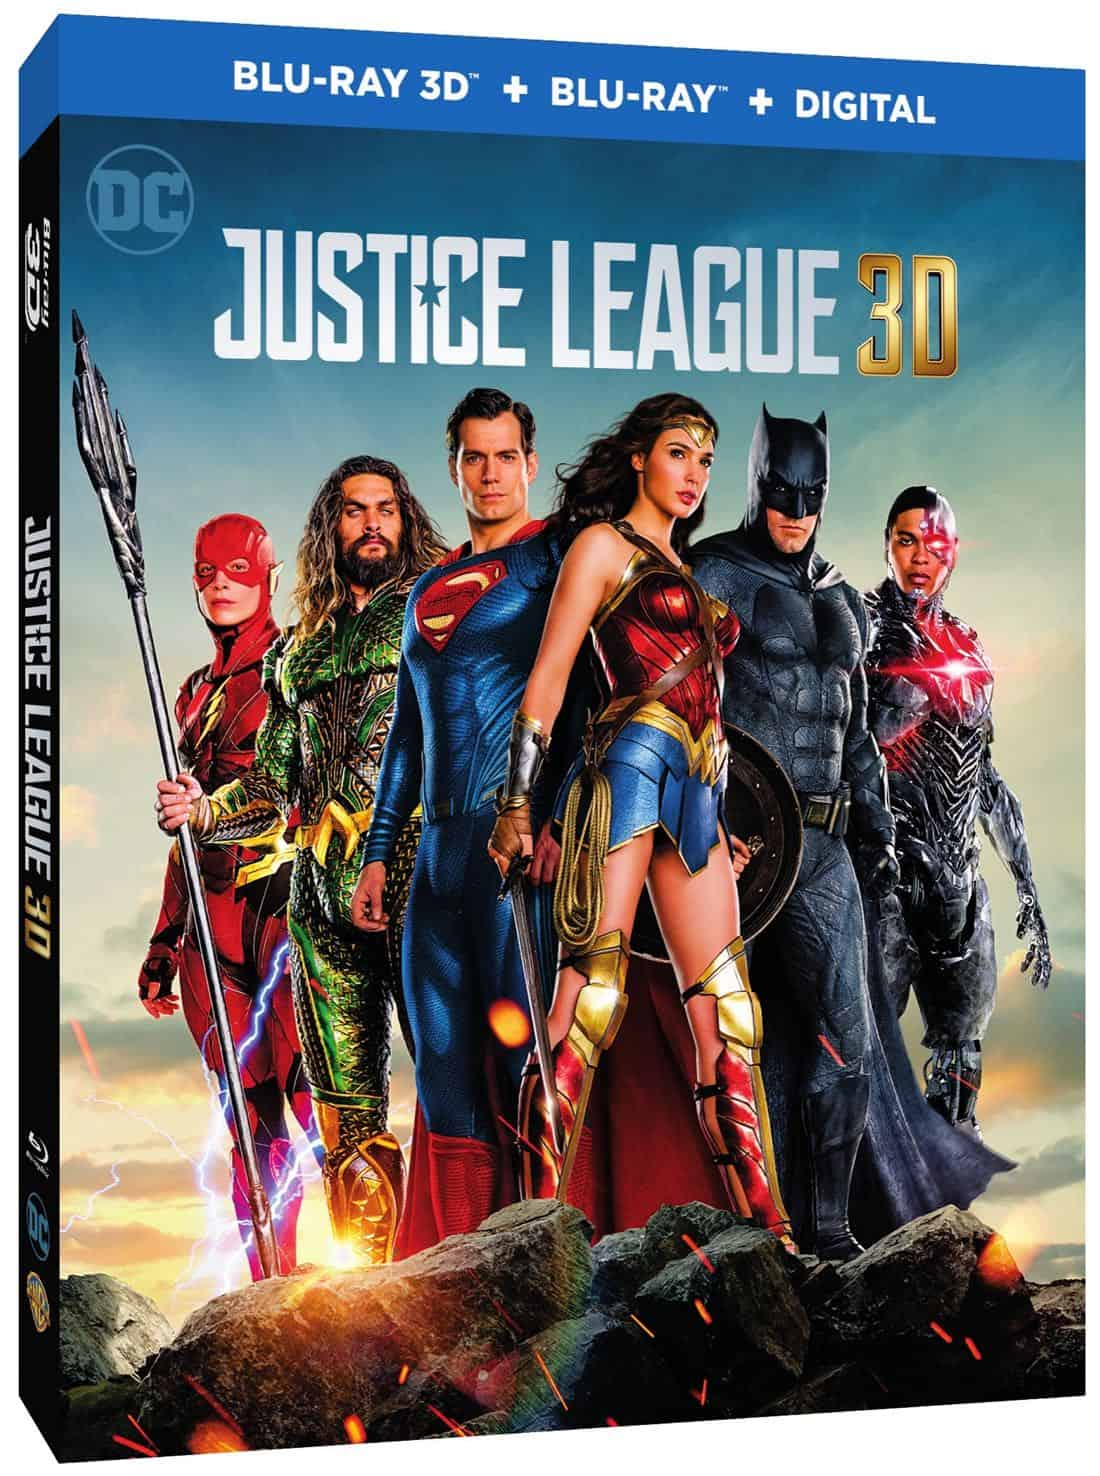 Justice-League-Bluray-3D